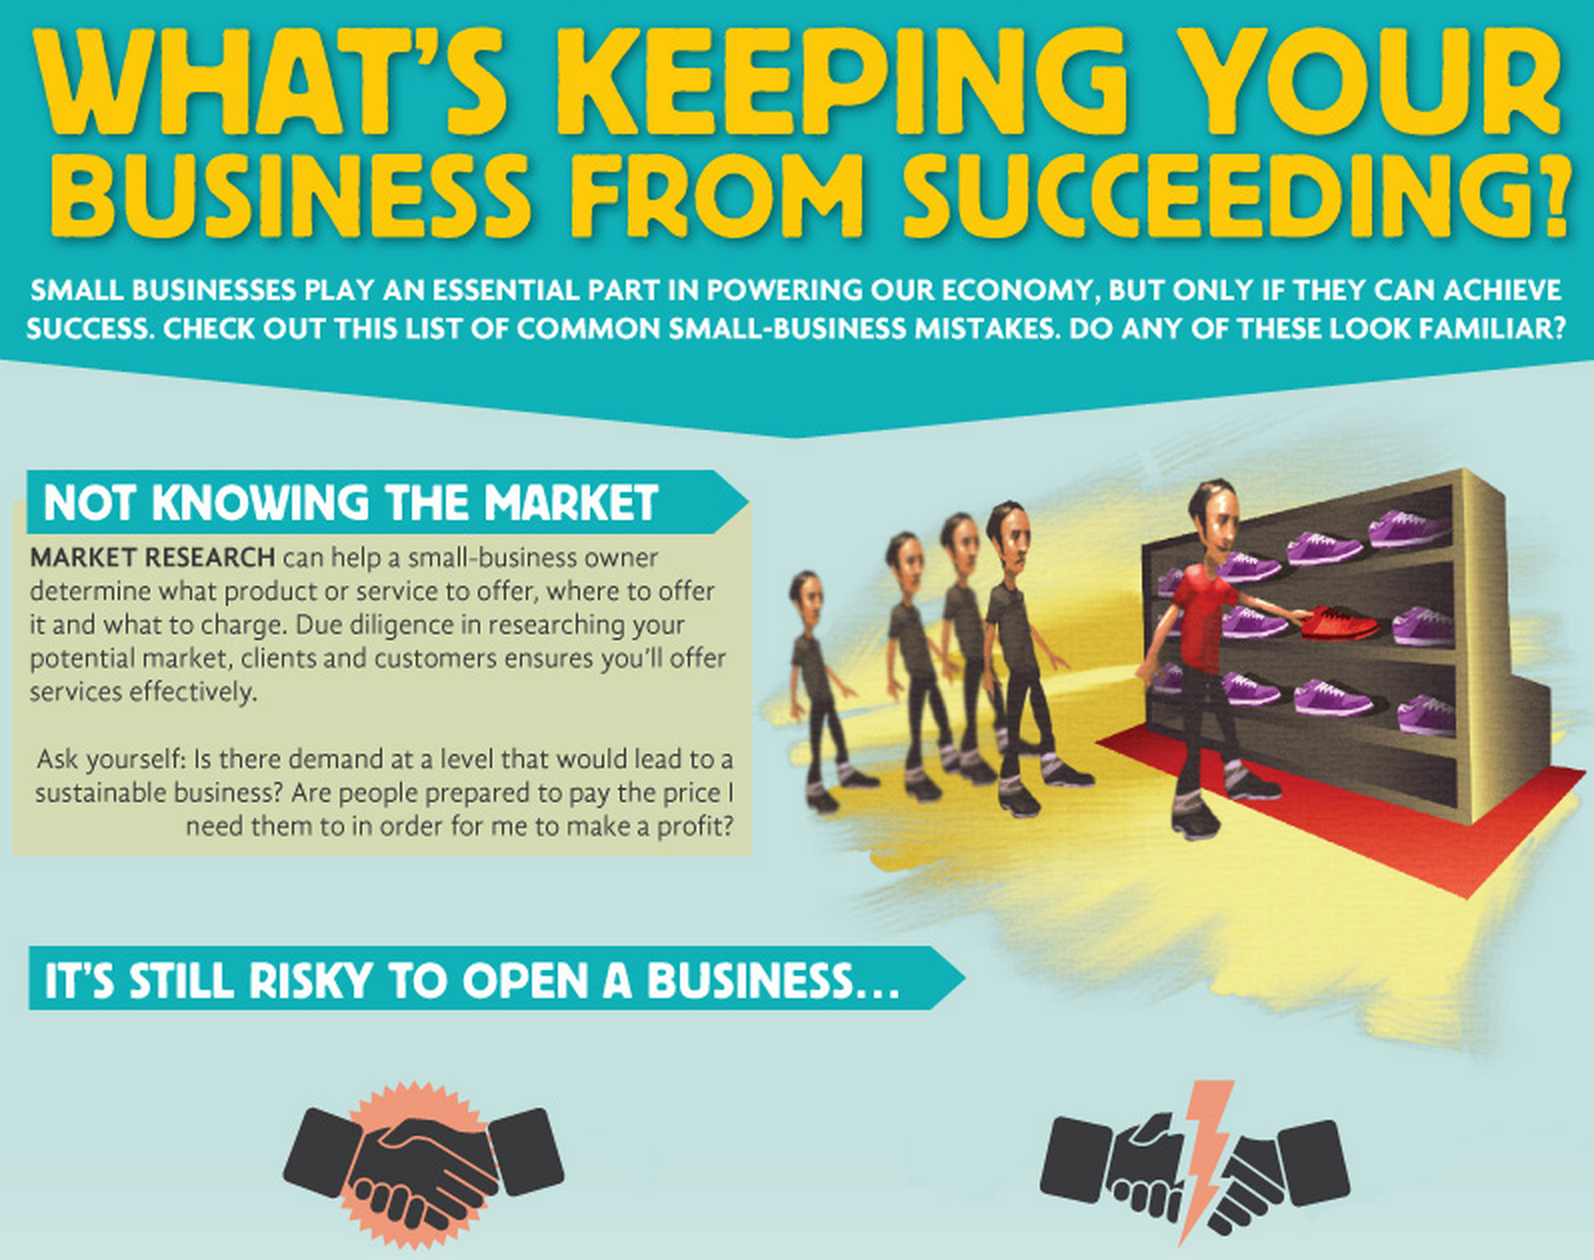 Whats Keeping Your Business From Succeeding